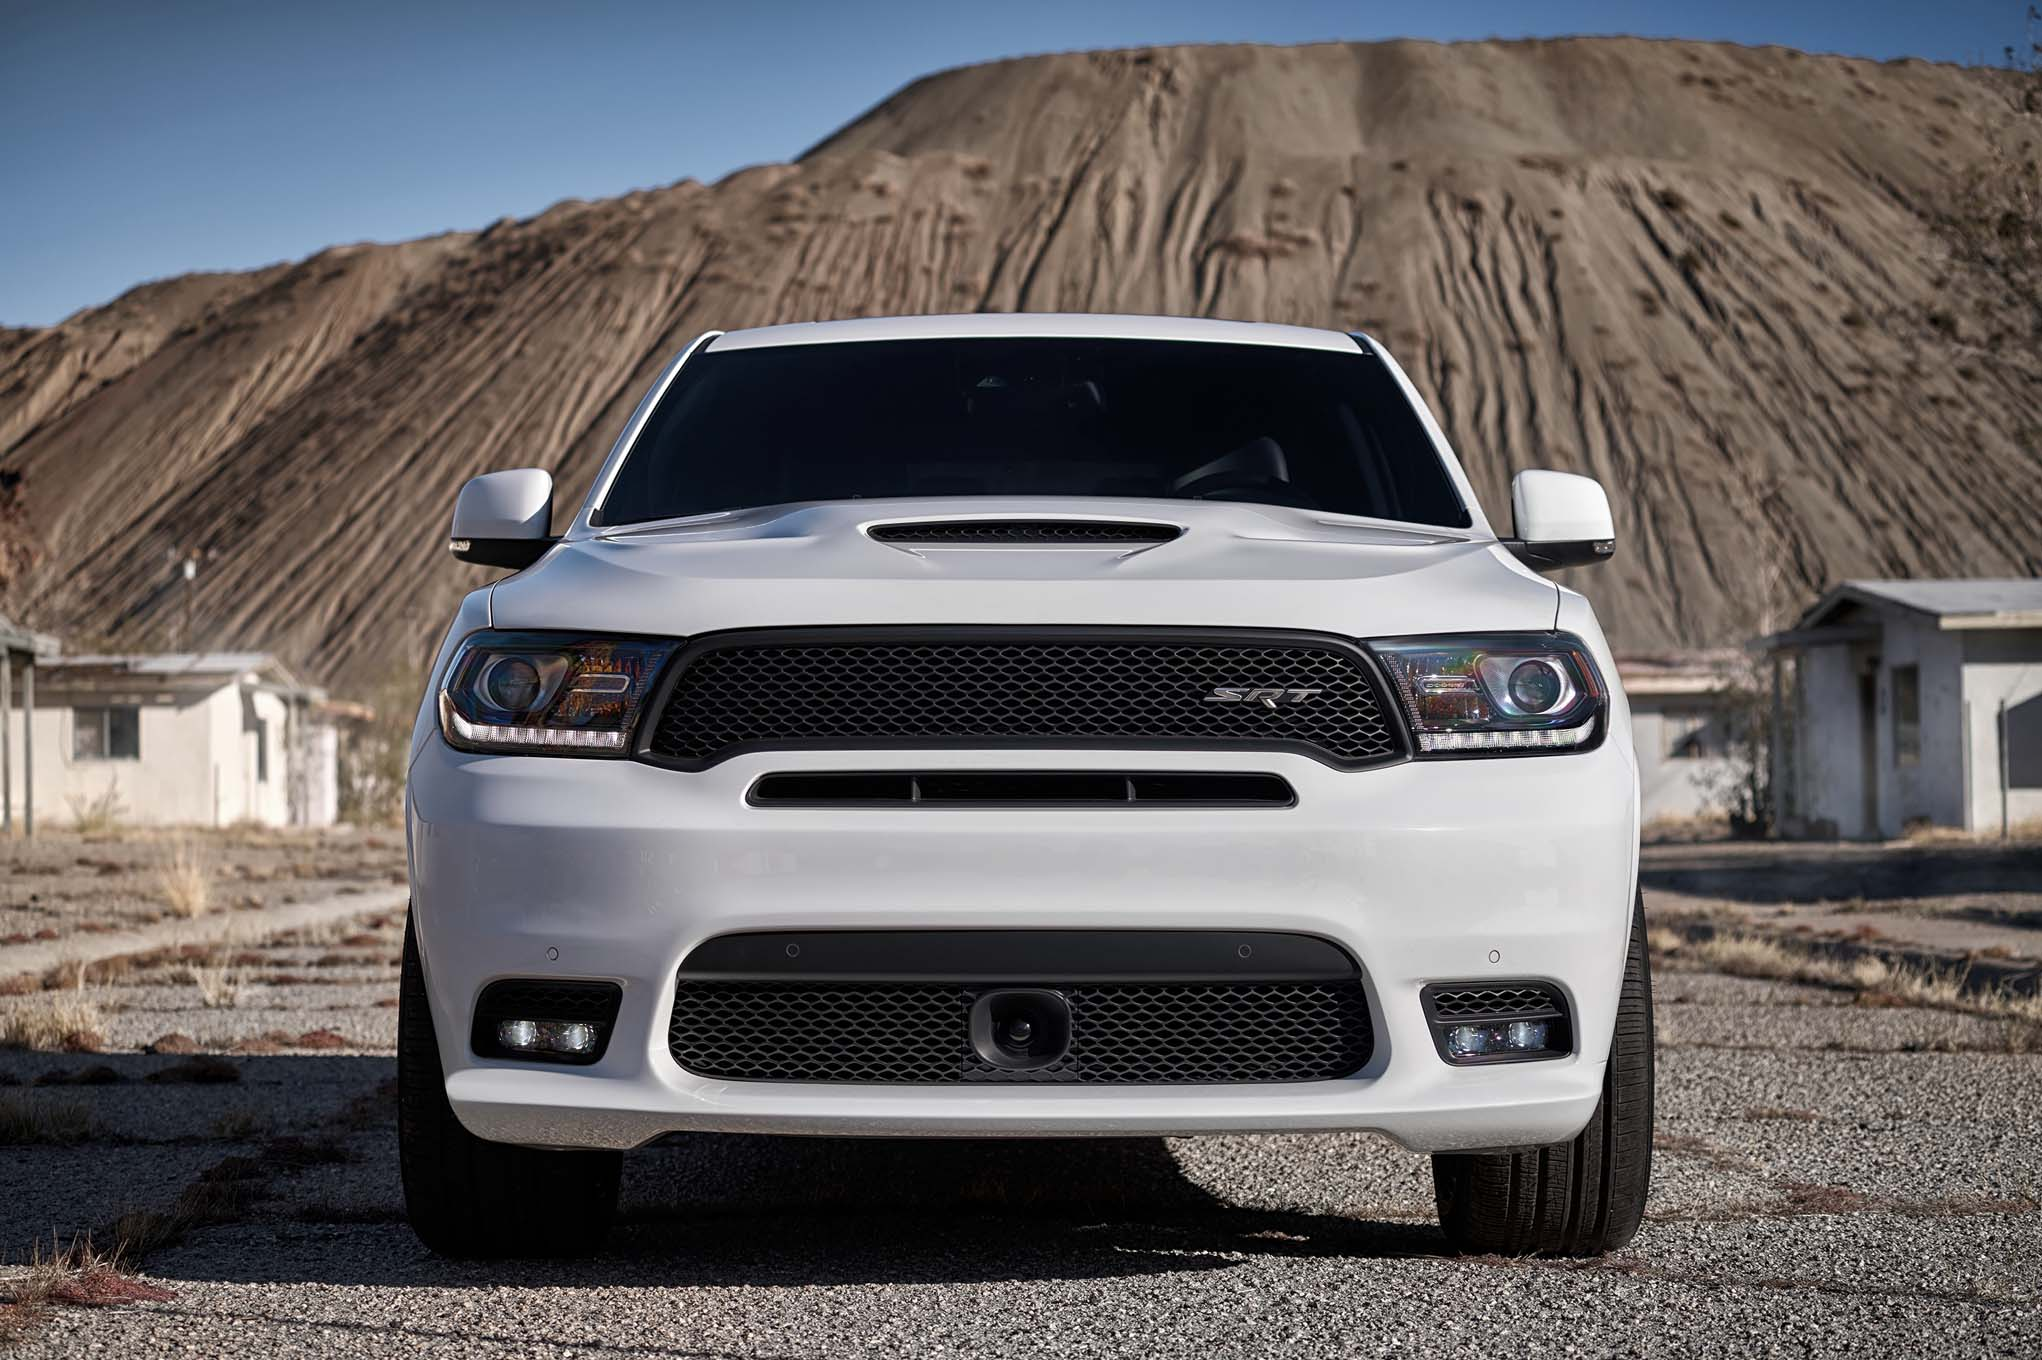 2018 dodge durango srt first look automobile magazine. Black Bedroom Furniture Sets. Home Design Ideas